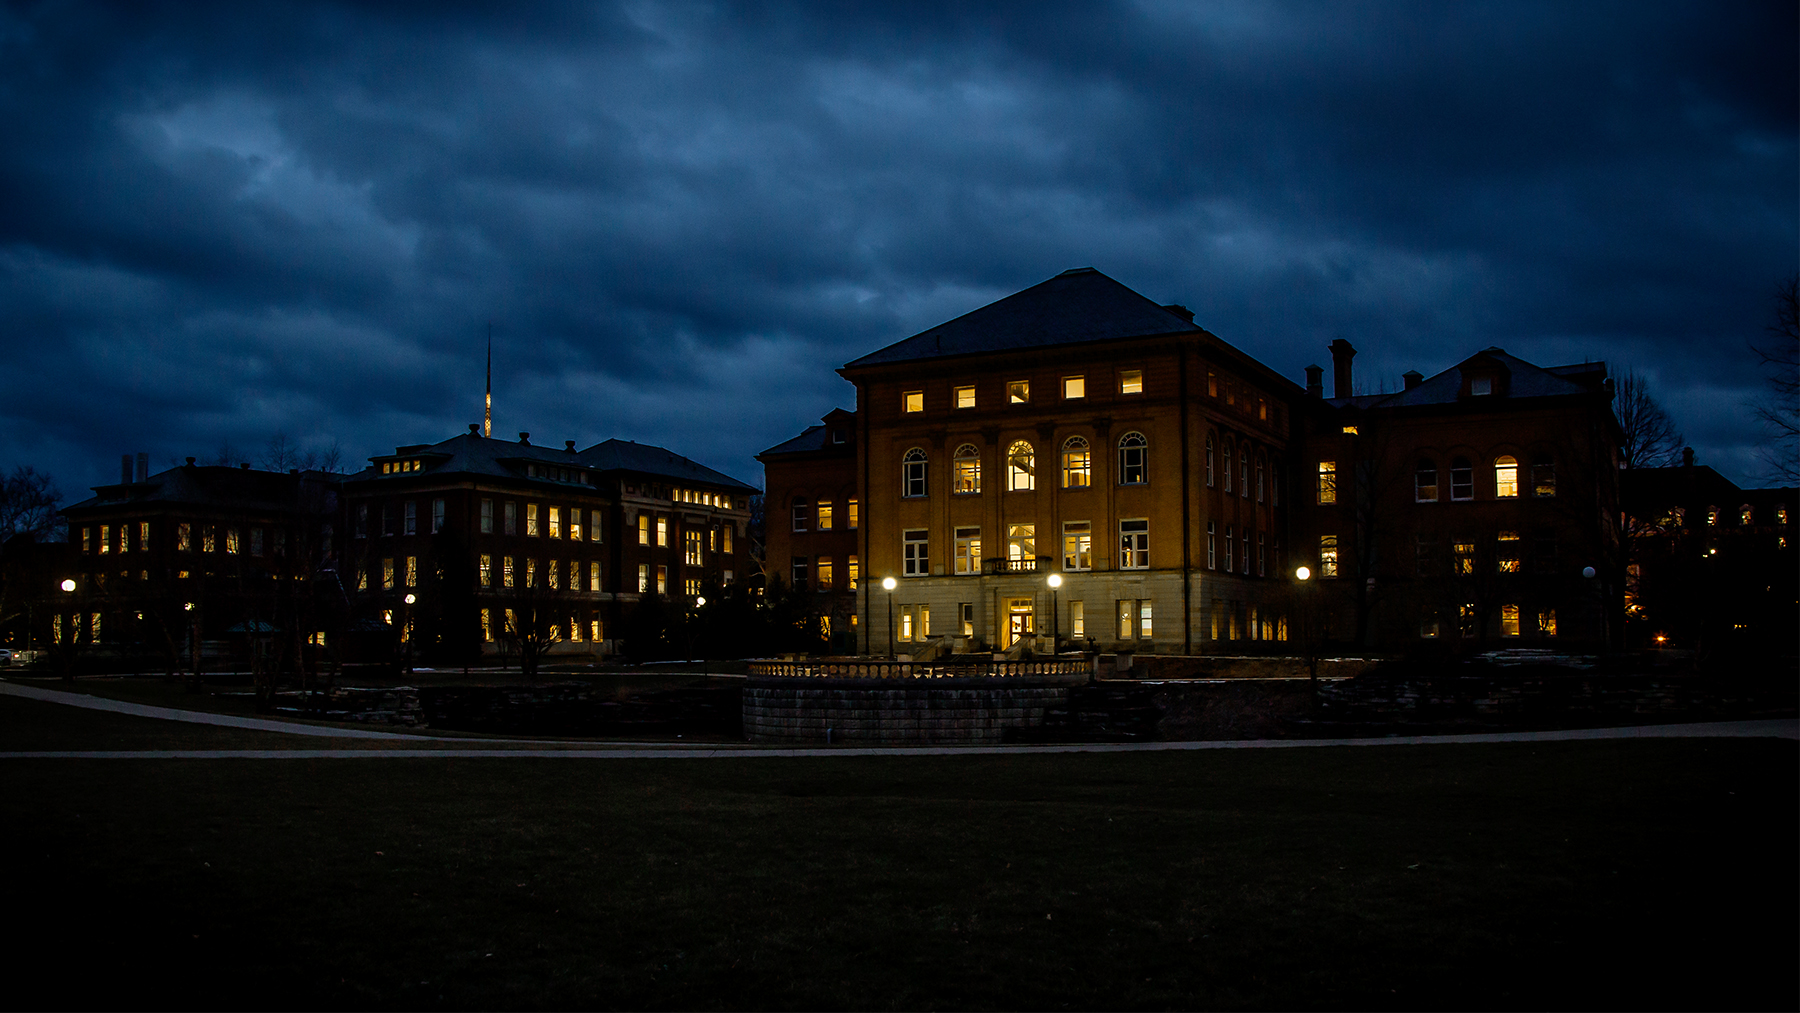 The back of Engineering Hall, viewed at night.